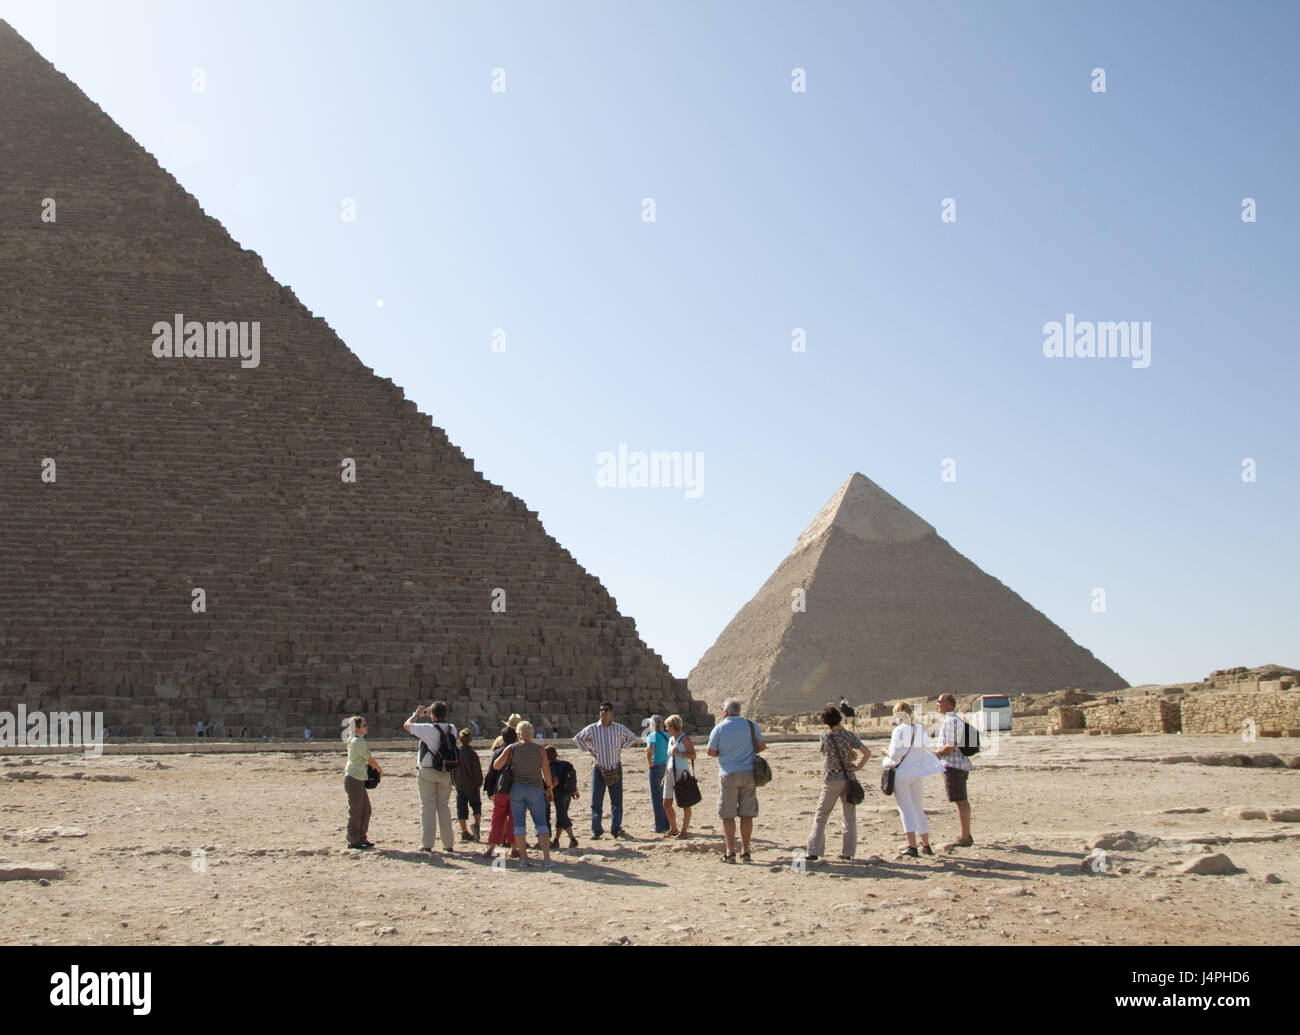 Egypt, Gizeh, pyramids, tourist group, Africa, structures, place of interest, landmark, person, tourist, tourism, Stock Photo